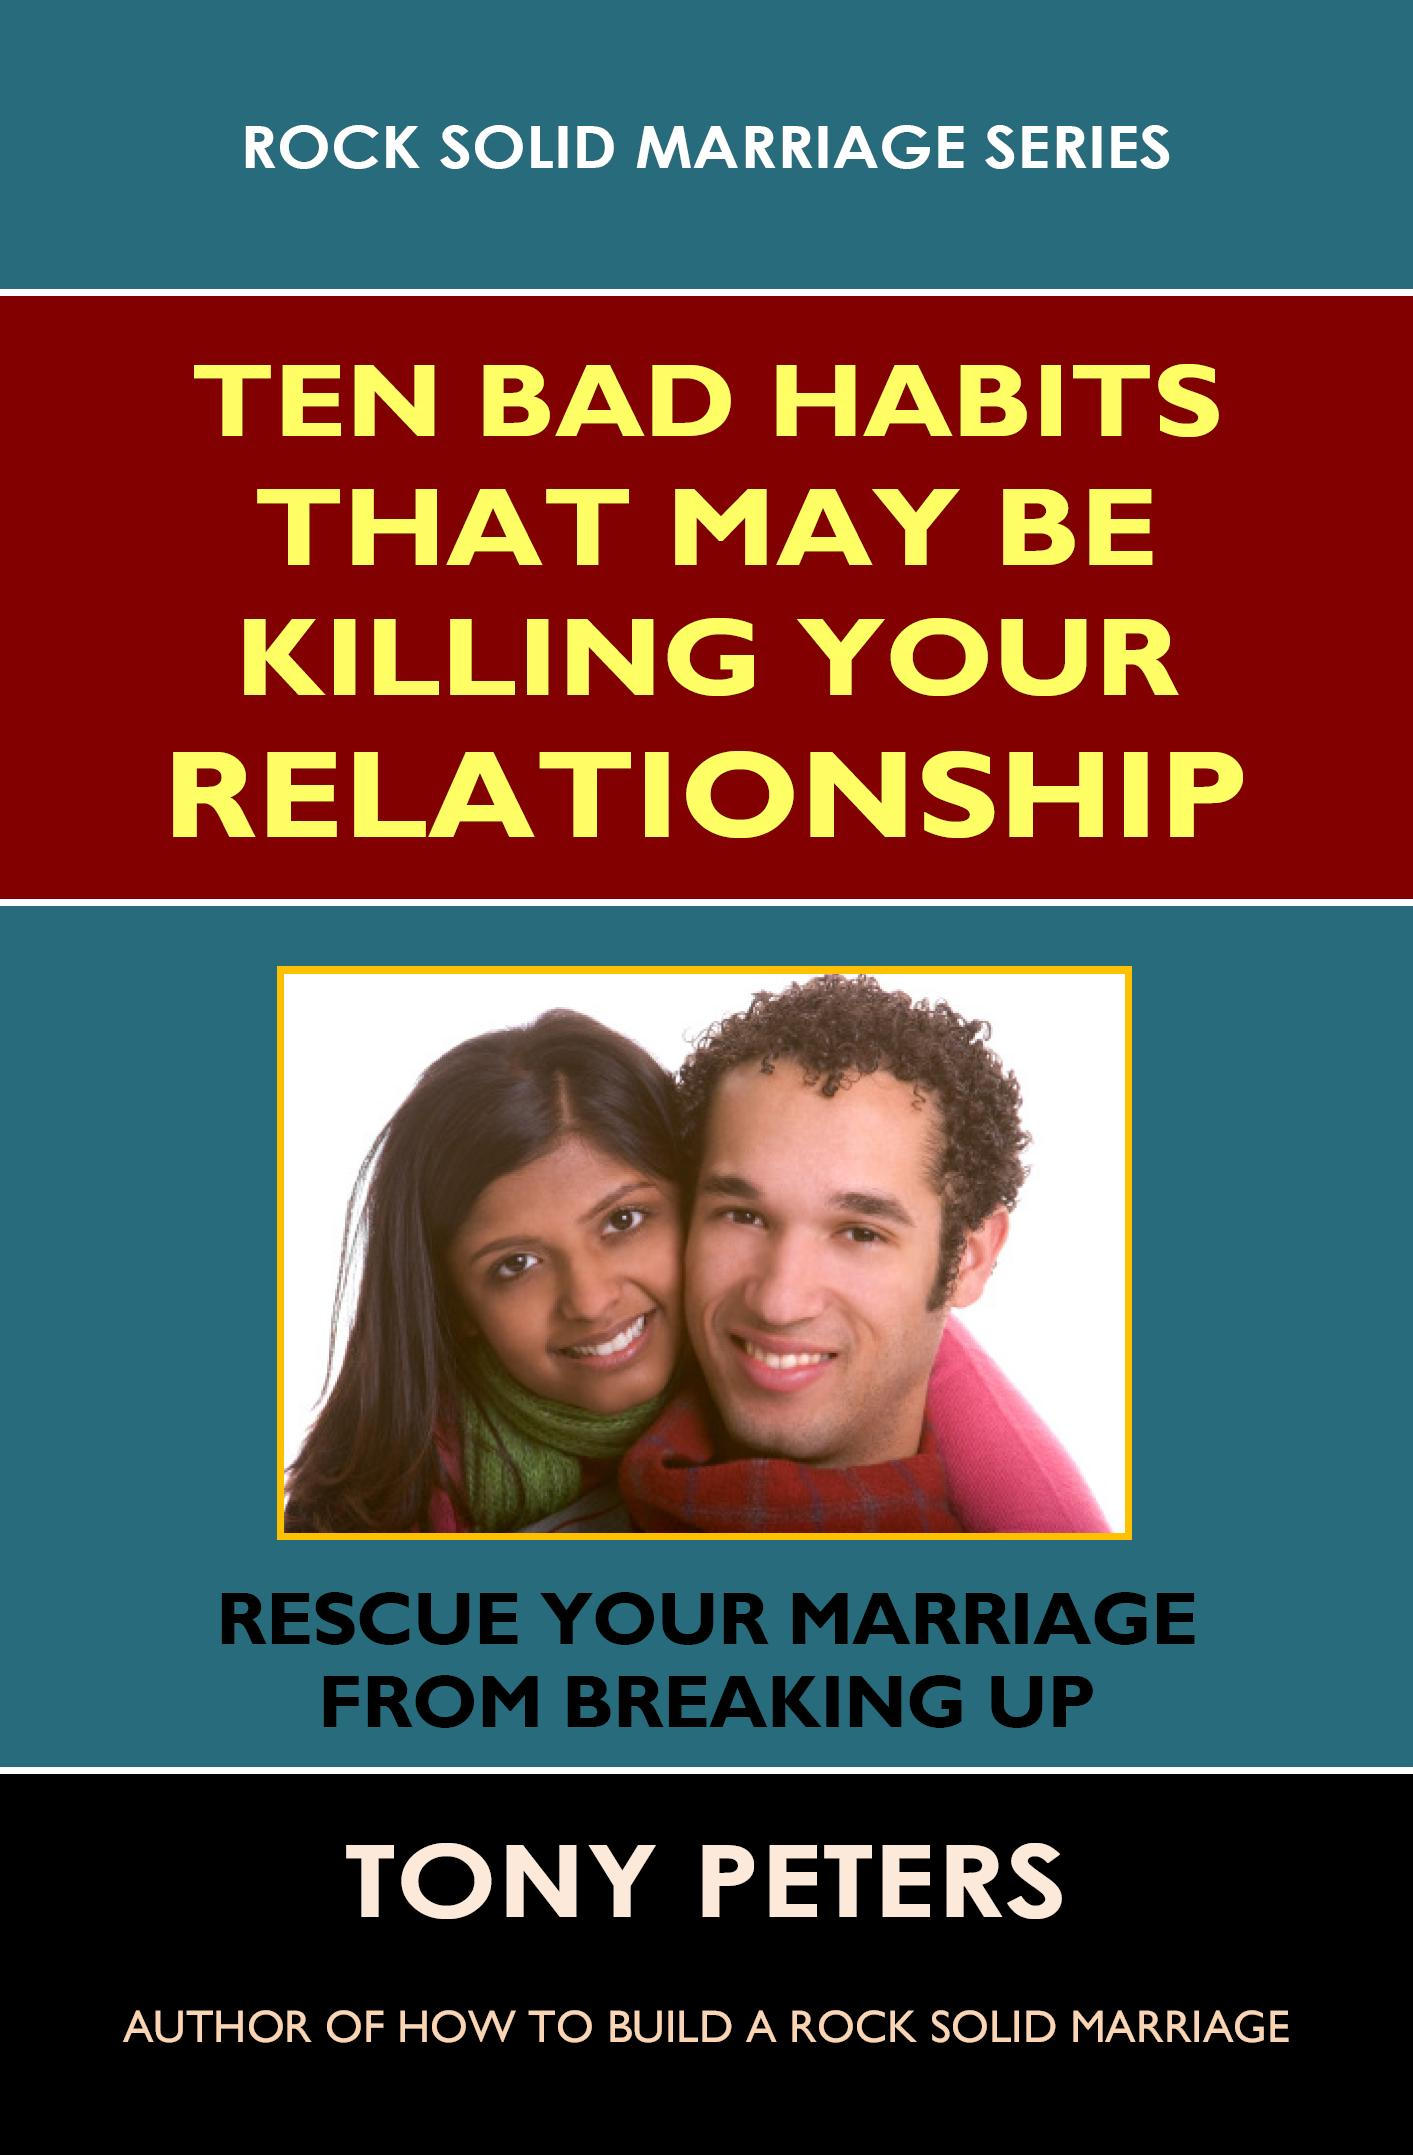 TEN BAD HABITS THAT MAY BE KILLING YOUR RELATIONSHIP